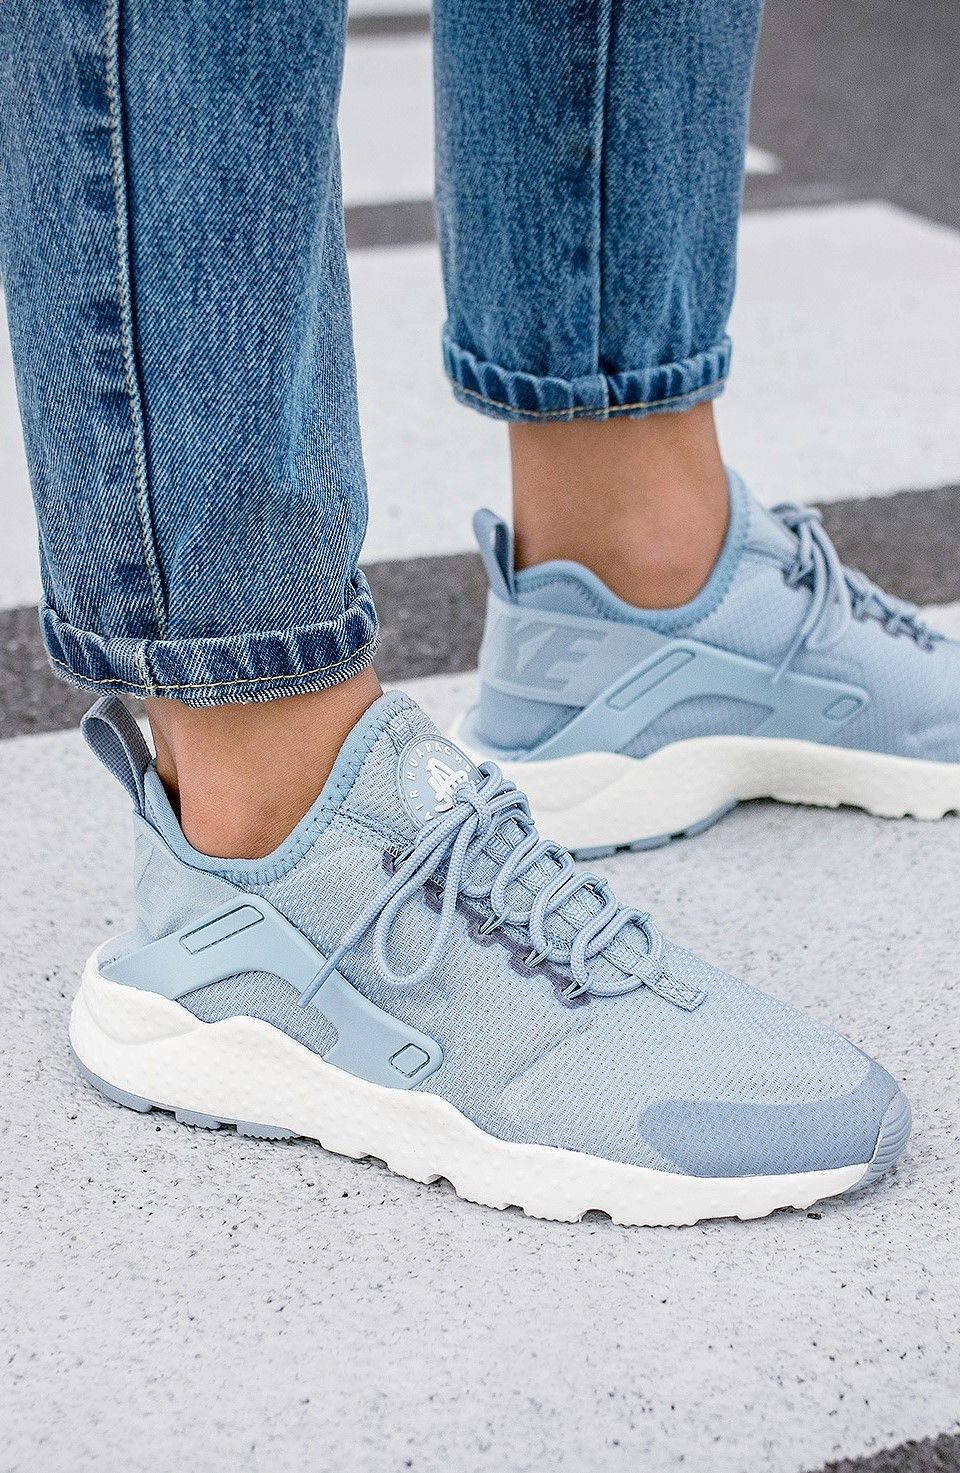 newest de4bb d340c Nike Wmns Air Huarache Run Ultra  Blue Grey  (via Kicks-daily.com)